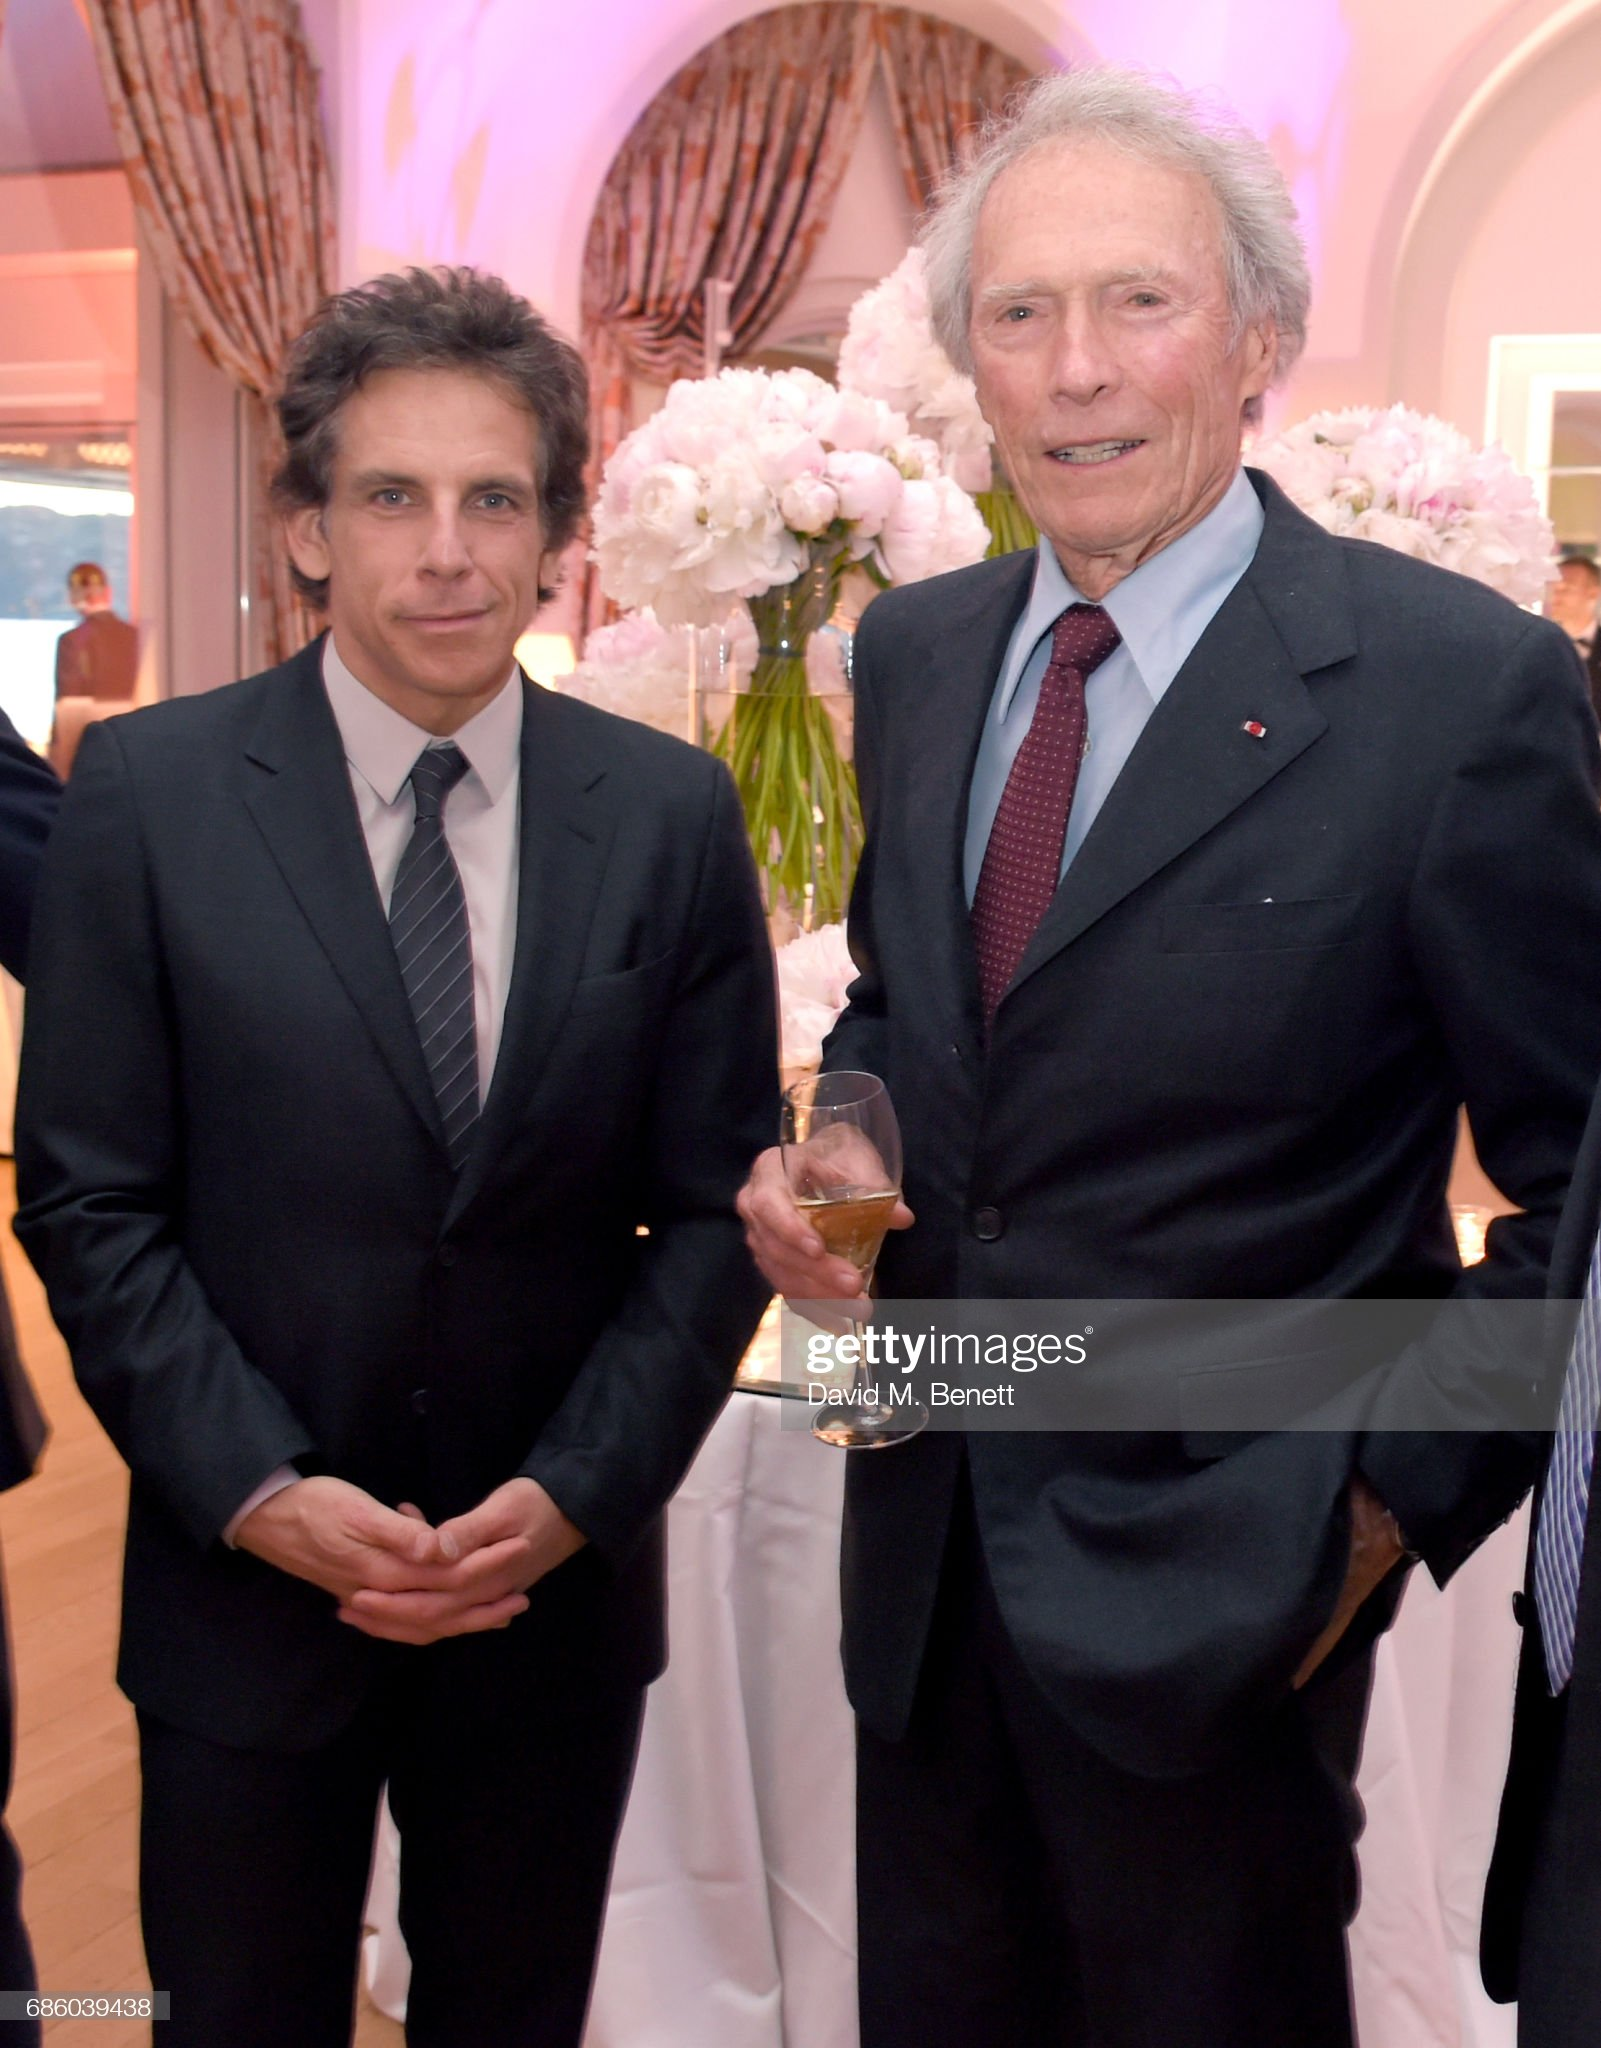 ¿Cuánto mide Clint Eastwood? - Altura - Real height - Página 2 Ben-stiller-and-clint-eastwood-attend-the-vanity-fair-and-hbo-dinner-picture-id686039438?s=2048x2048